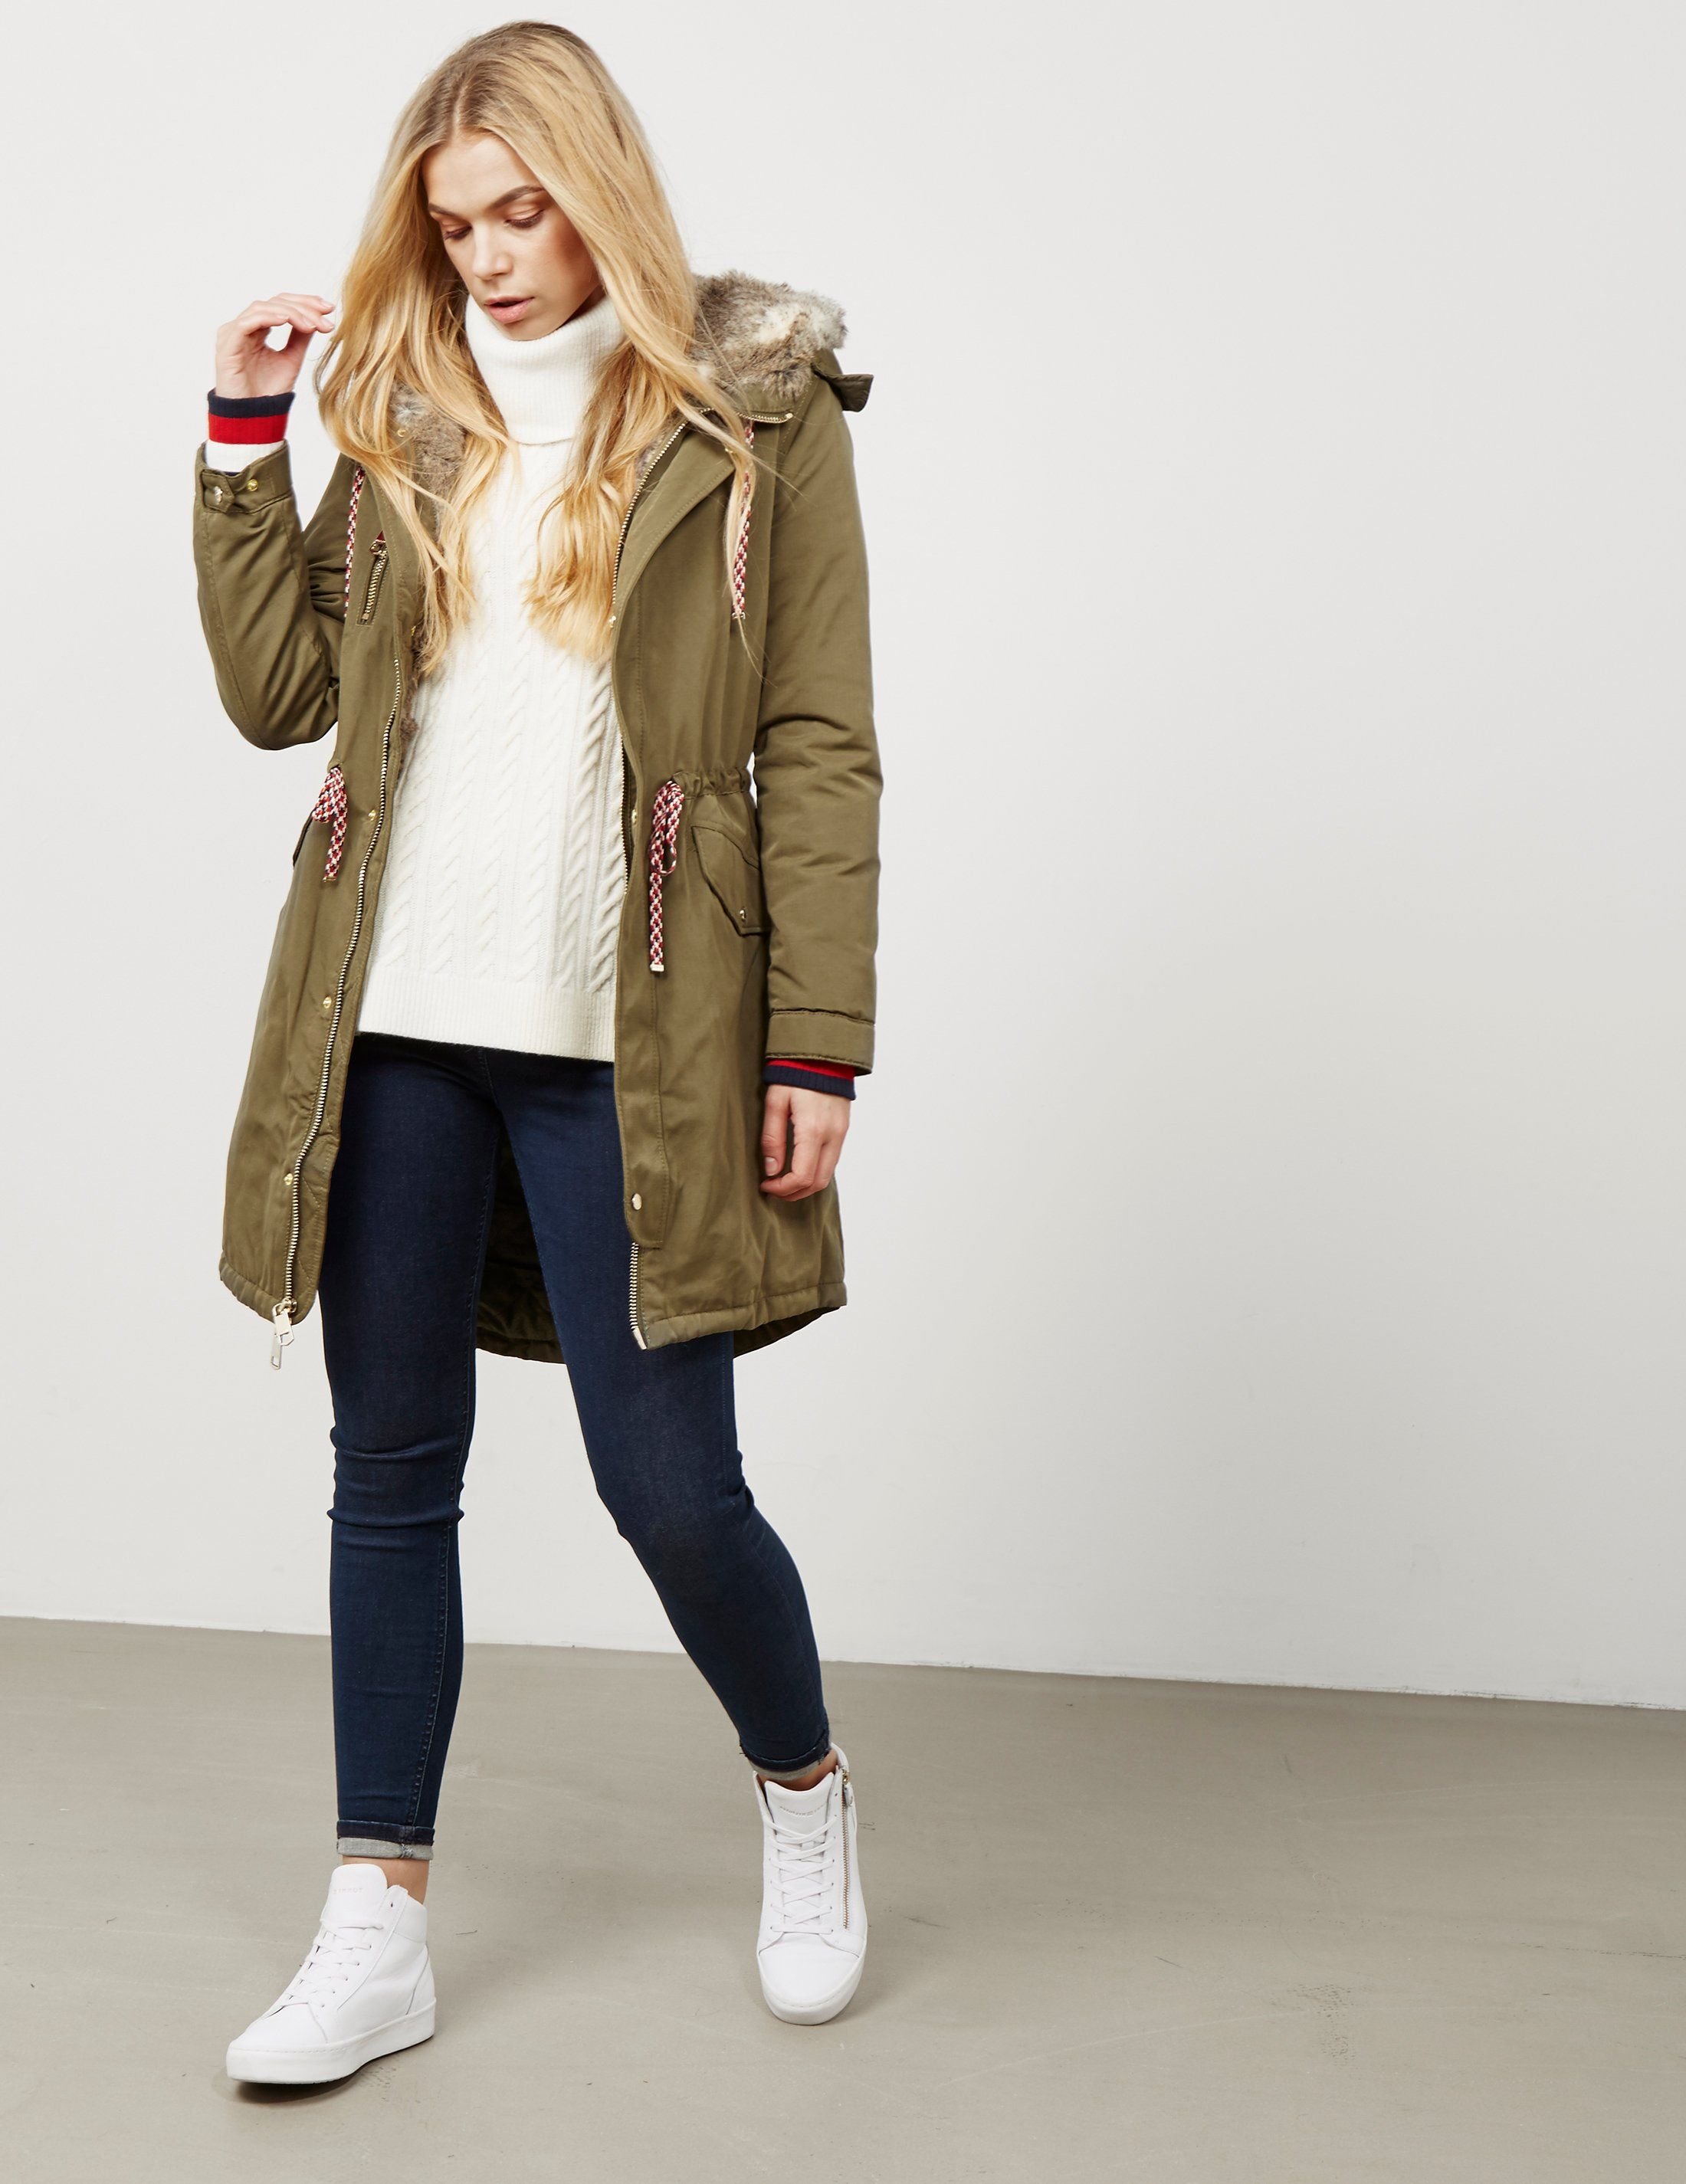 Tommy Hilfiger Cynthia Padded Parka - Online Exclusive   Tessuti